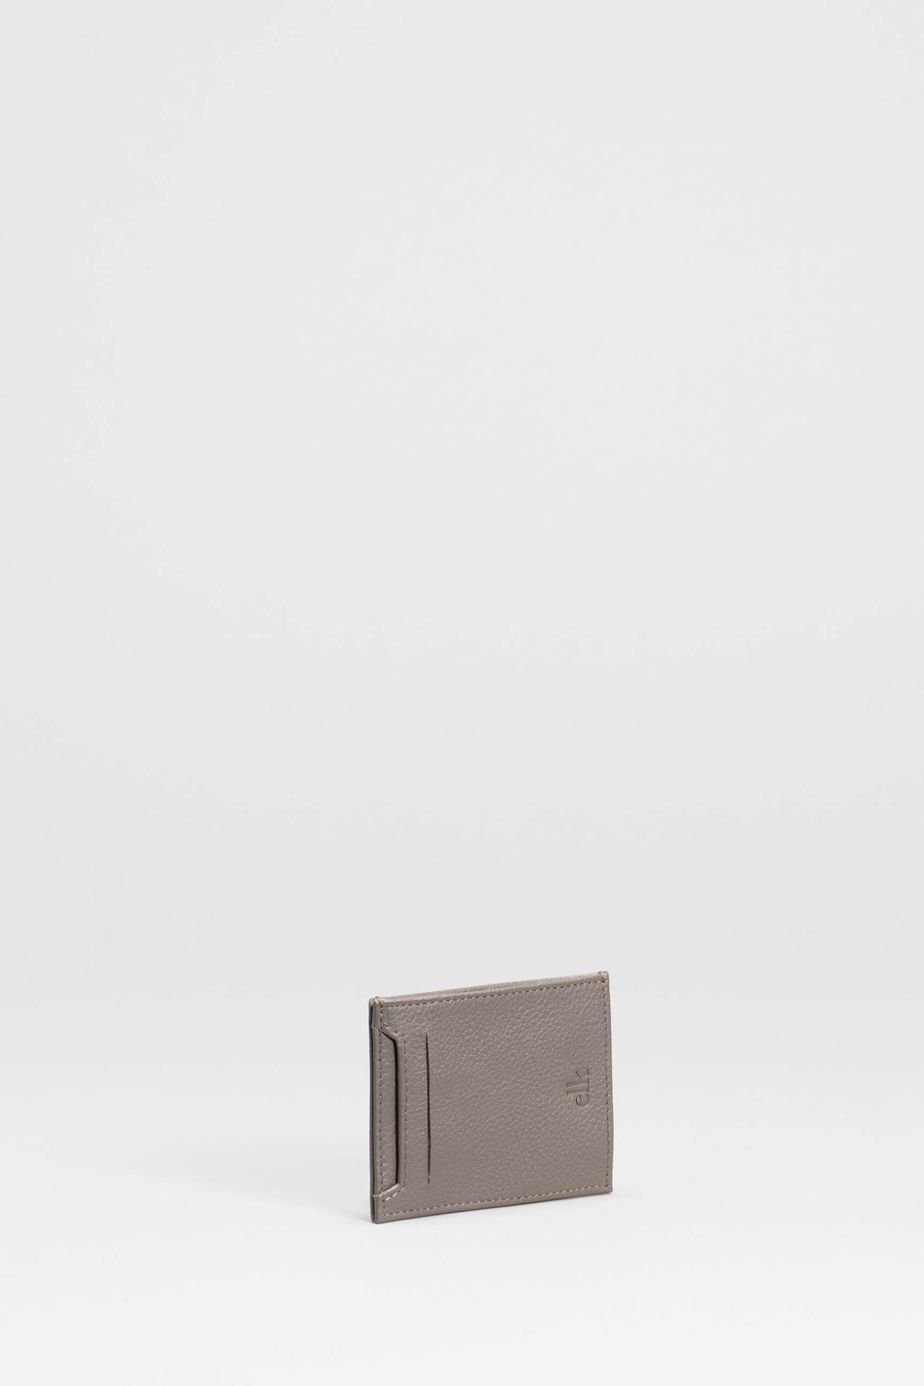 Lovon Leather Card Holder